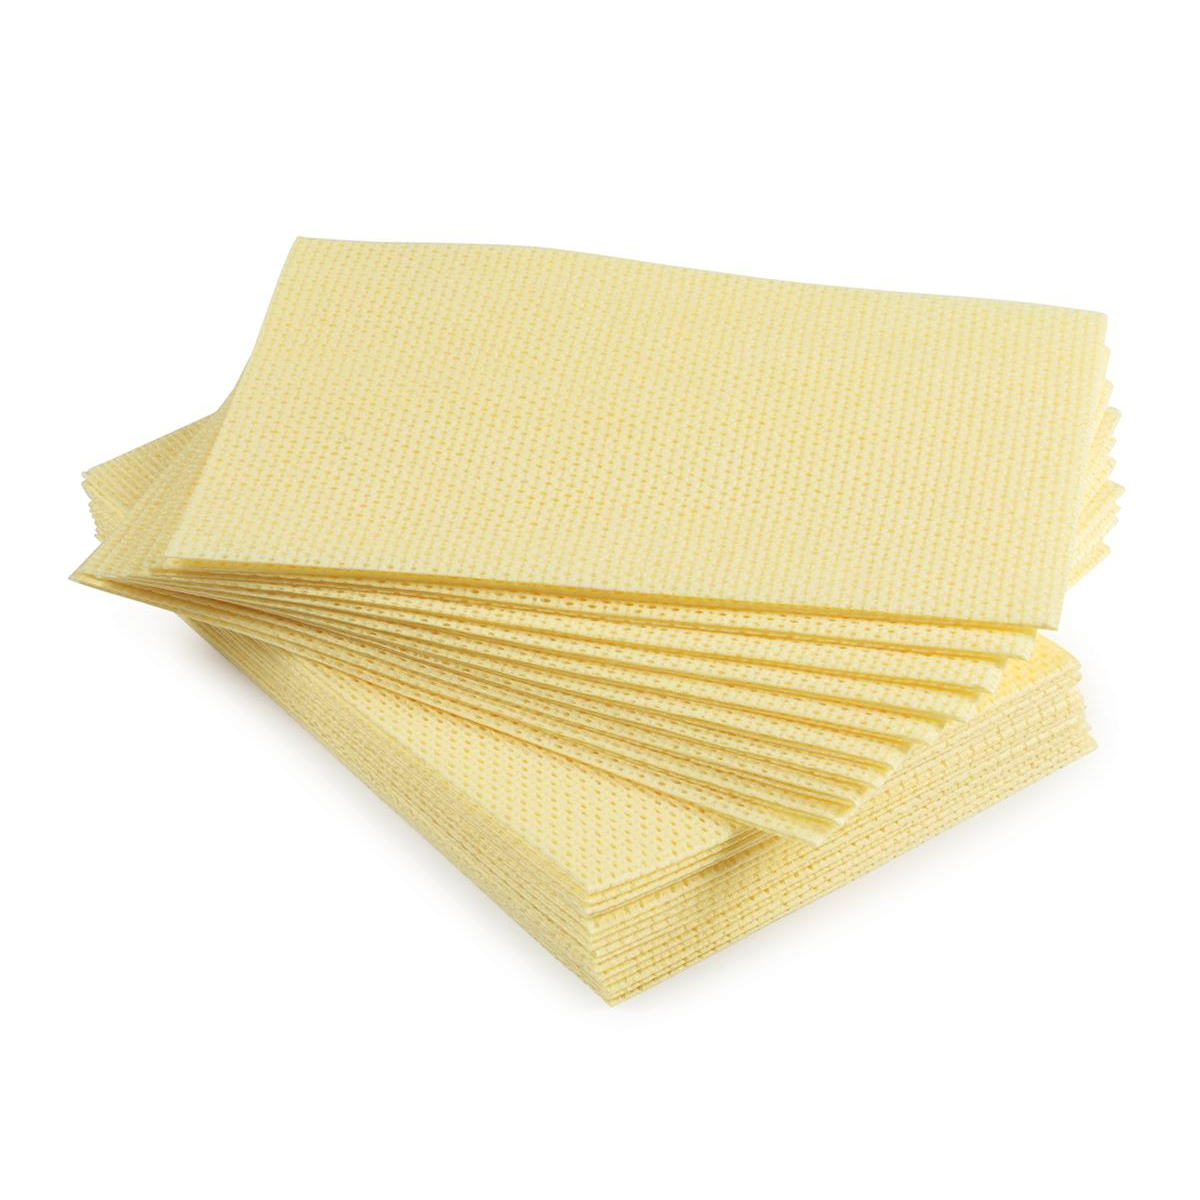 5 Star Facilities Cleaning Cloths Anti-microbial Heavy-duty 76gsm W500xL300mm Yellow [Pack 25]